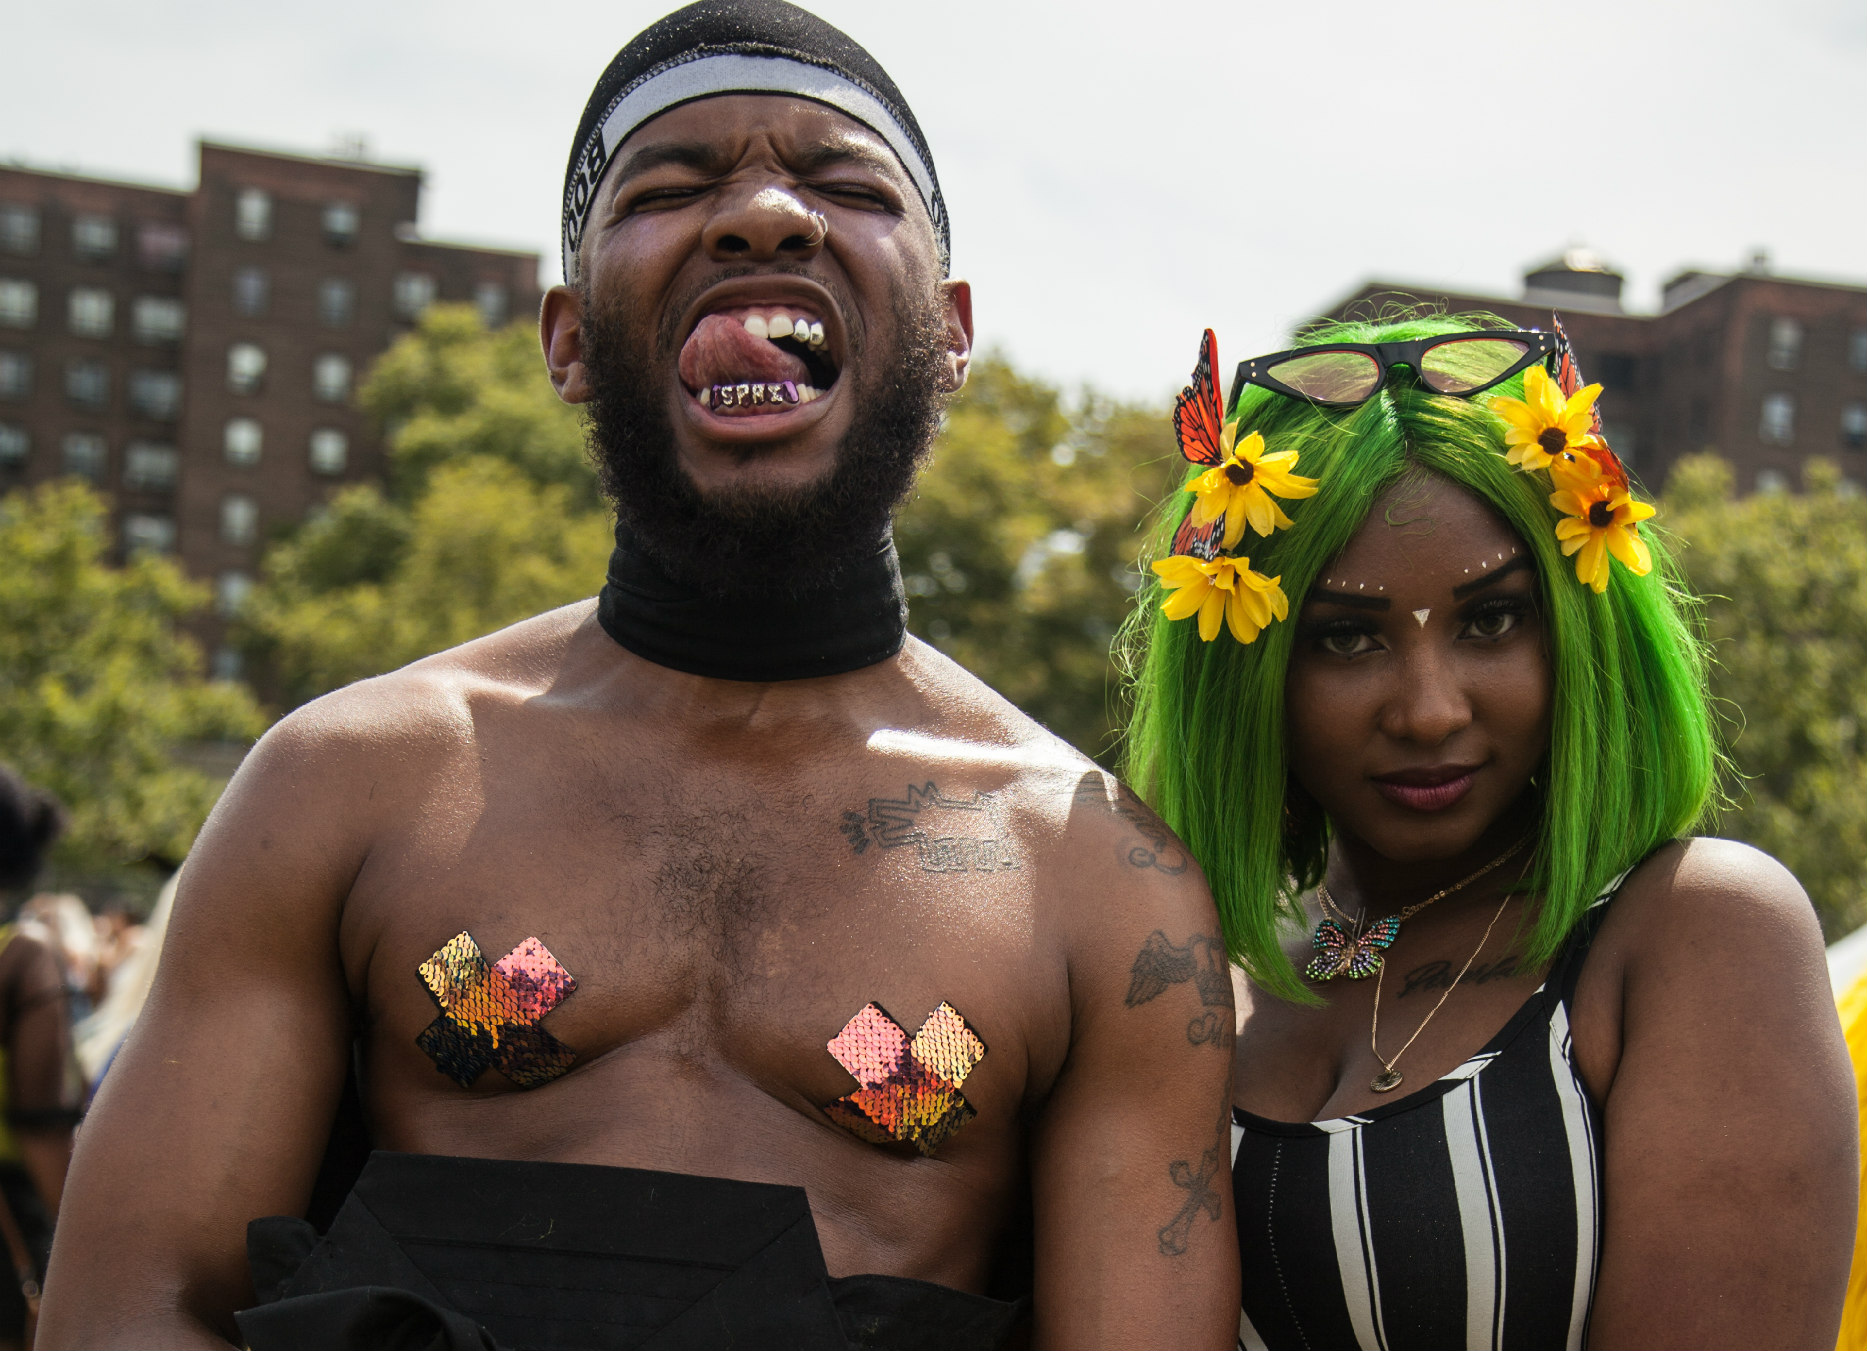 a brownskinned Black man with multicolored nipple covers, a gold grill, and his tongue licking his teeth standing next to a brownskinneed woman with green hair with yellow flowers and a striped black and white jumpsuit